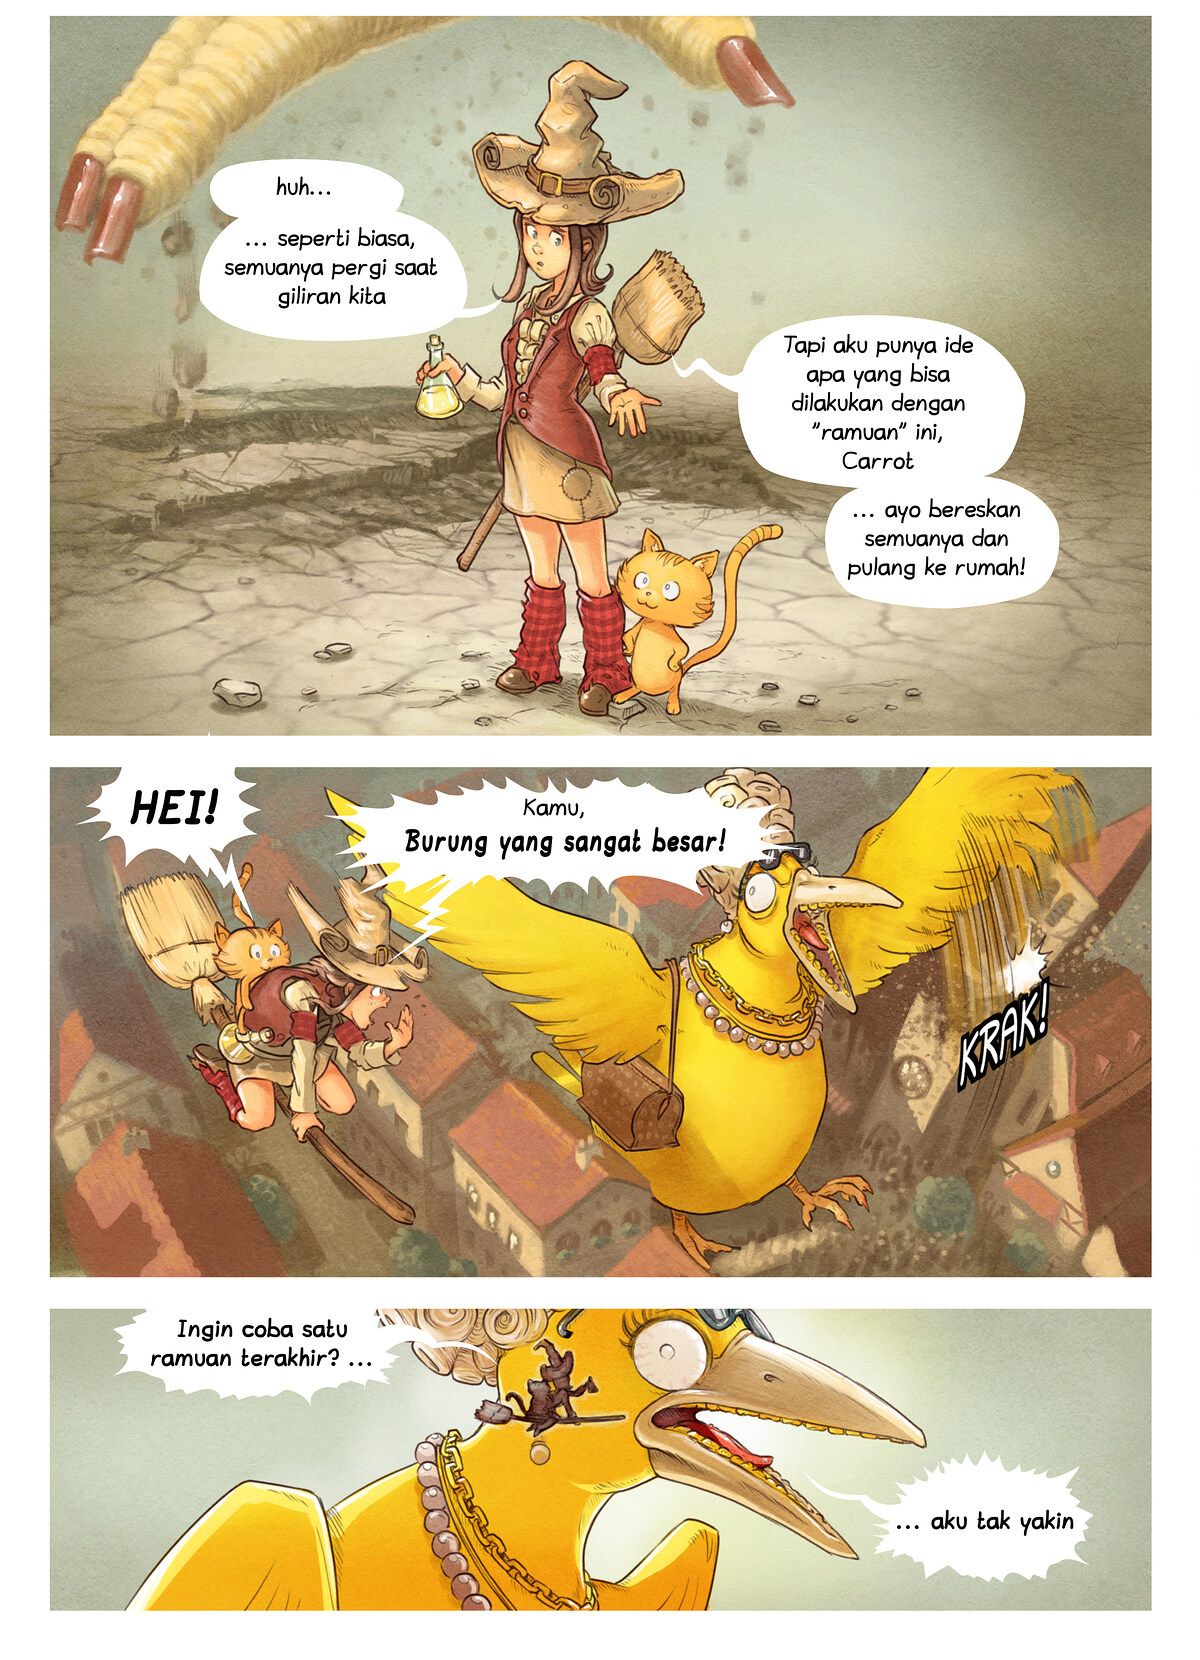 A webcomic page of Pepper&Carrot, episode 6 [id], halaman 8